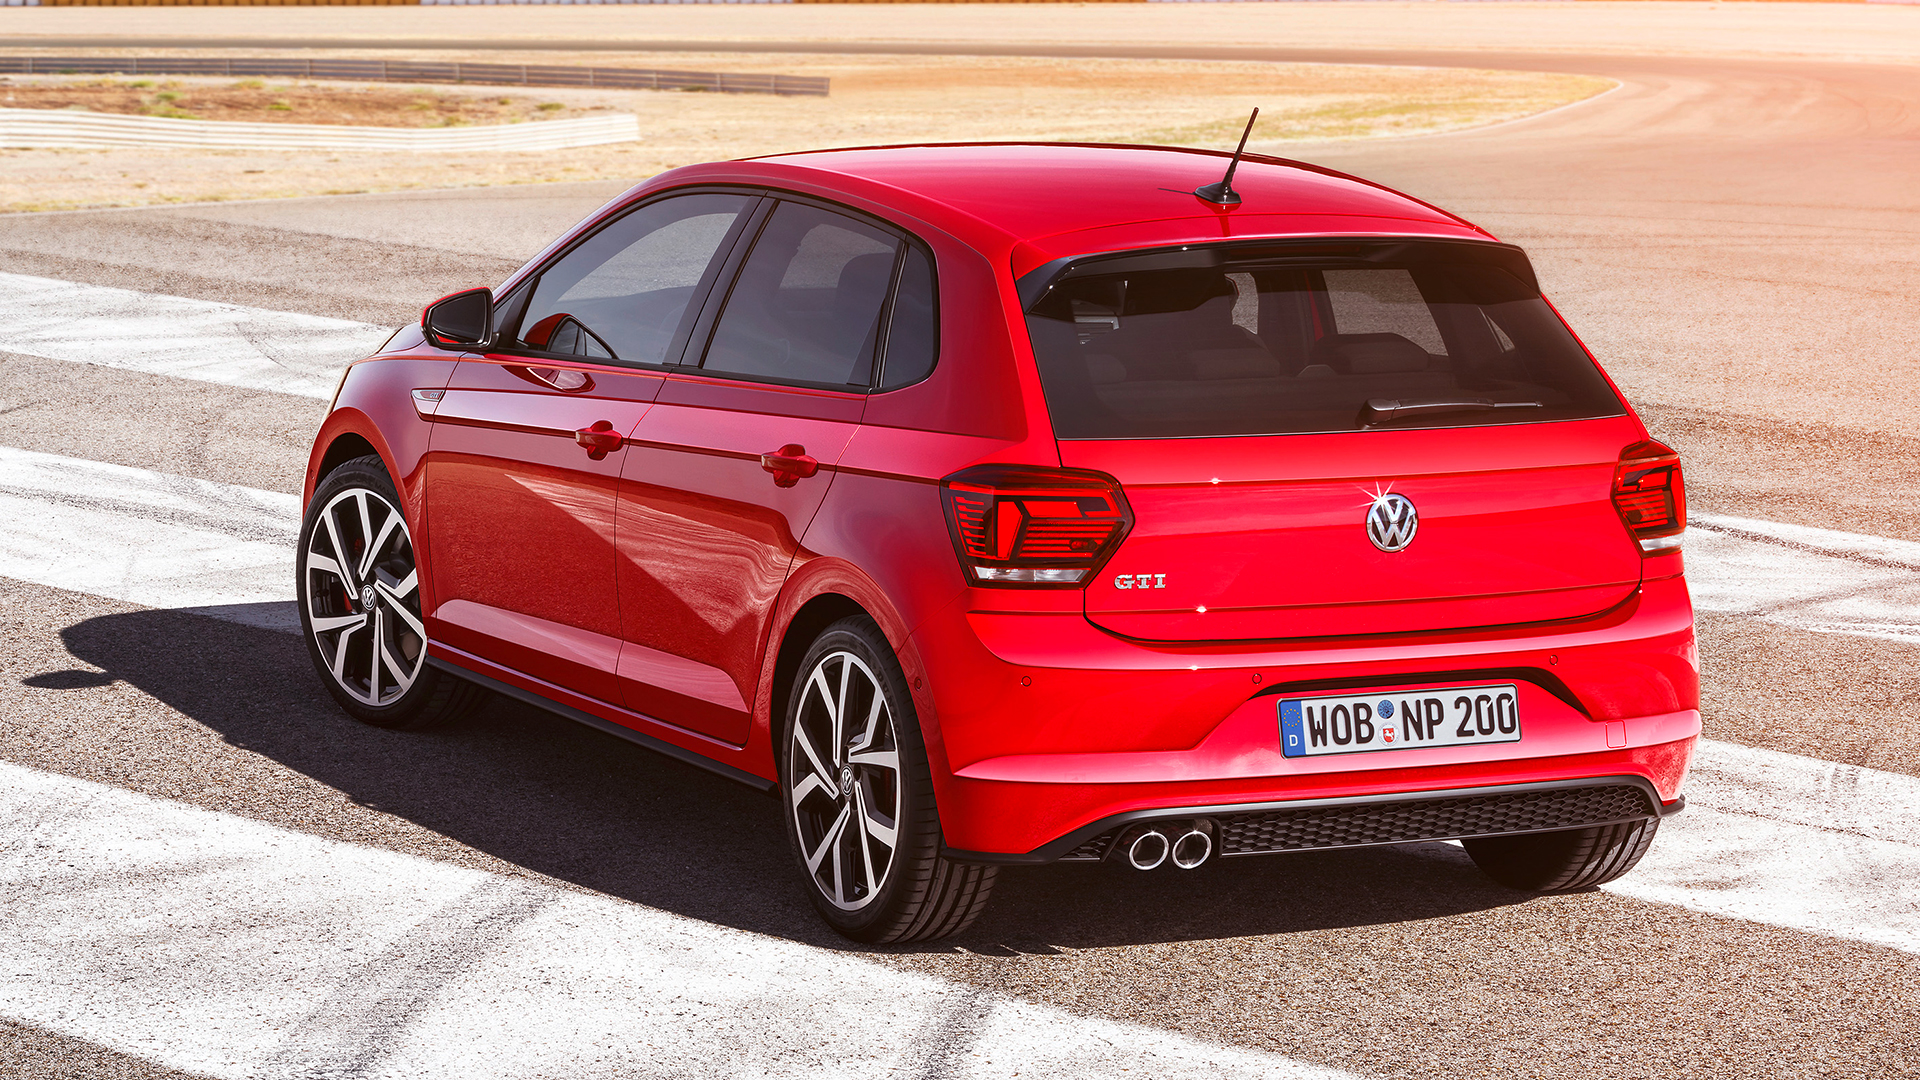 Volkswagen Polo Used Cars For Sale In Mansfield Autotrader Uk